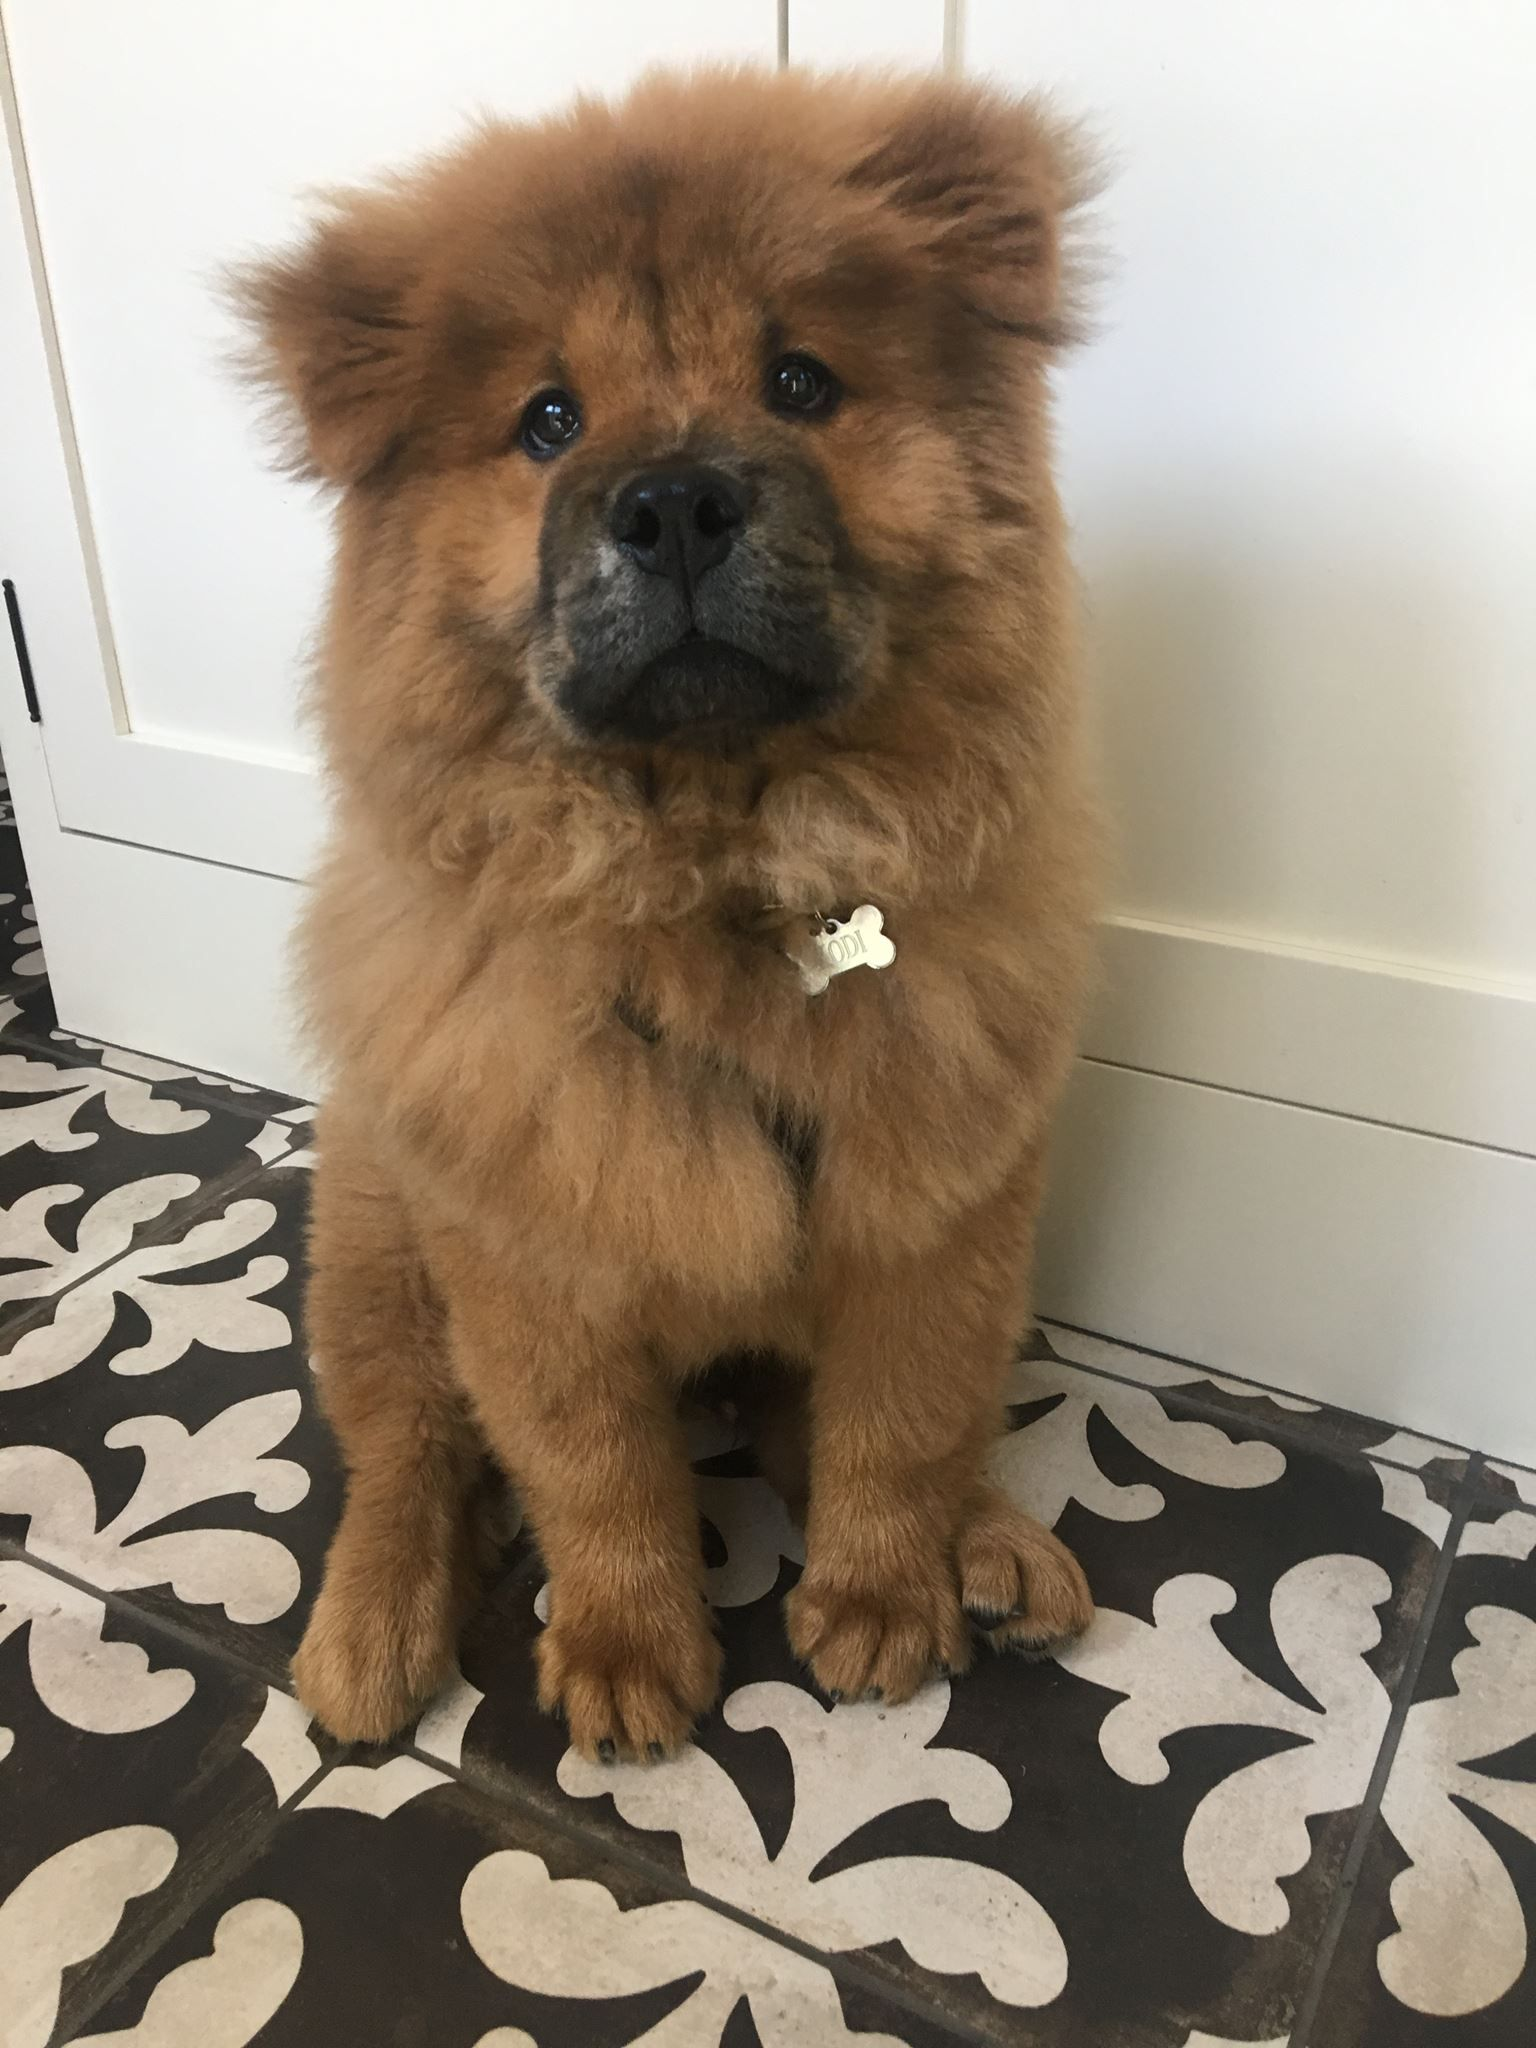 Ig Alphaomegatrades This Is Kodi The Chow Chow Dogpictures Dogs